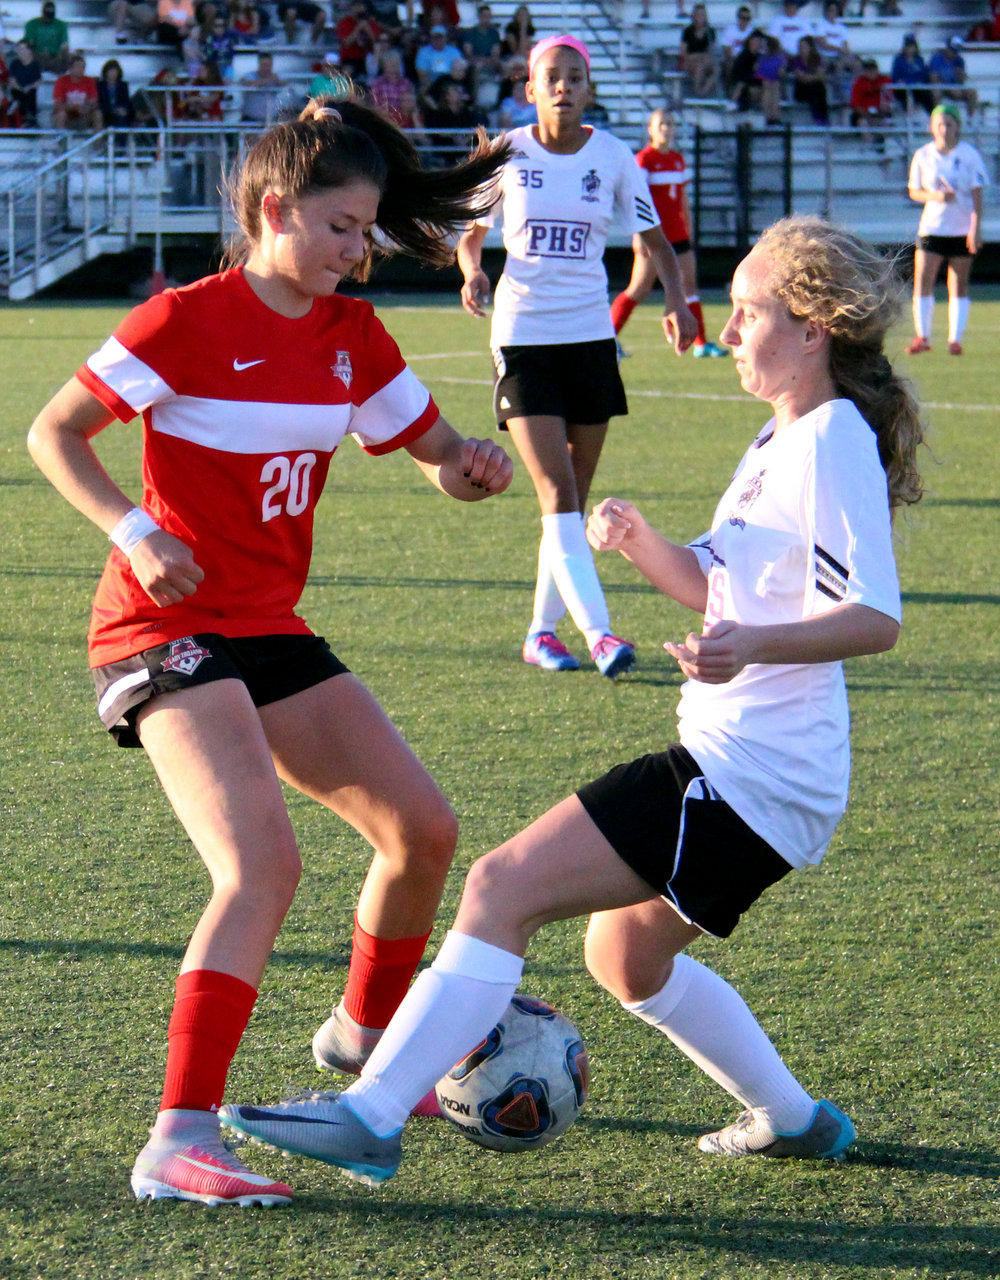 ROSS MARTIN/Citizen photo Park Hill freshman Dragana Andonovski, left, battles for a loose ball against a Park Hill South defender Saturday, May 6 at Park Hill District Soccer Complex in Riverside, Mo.